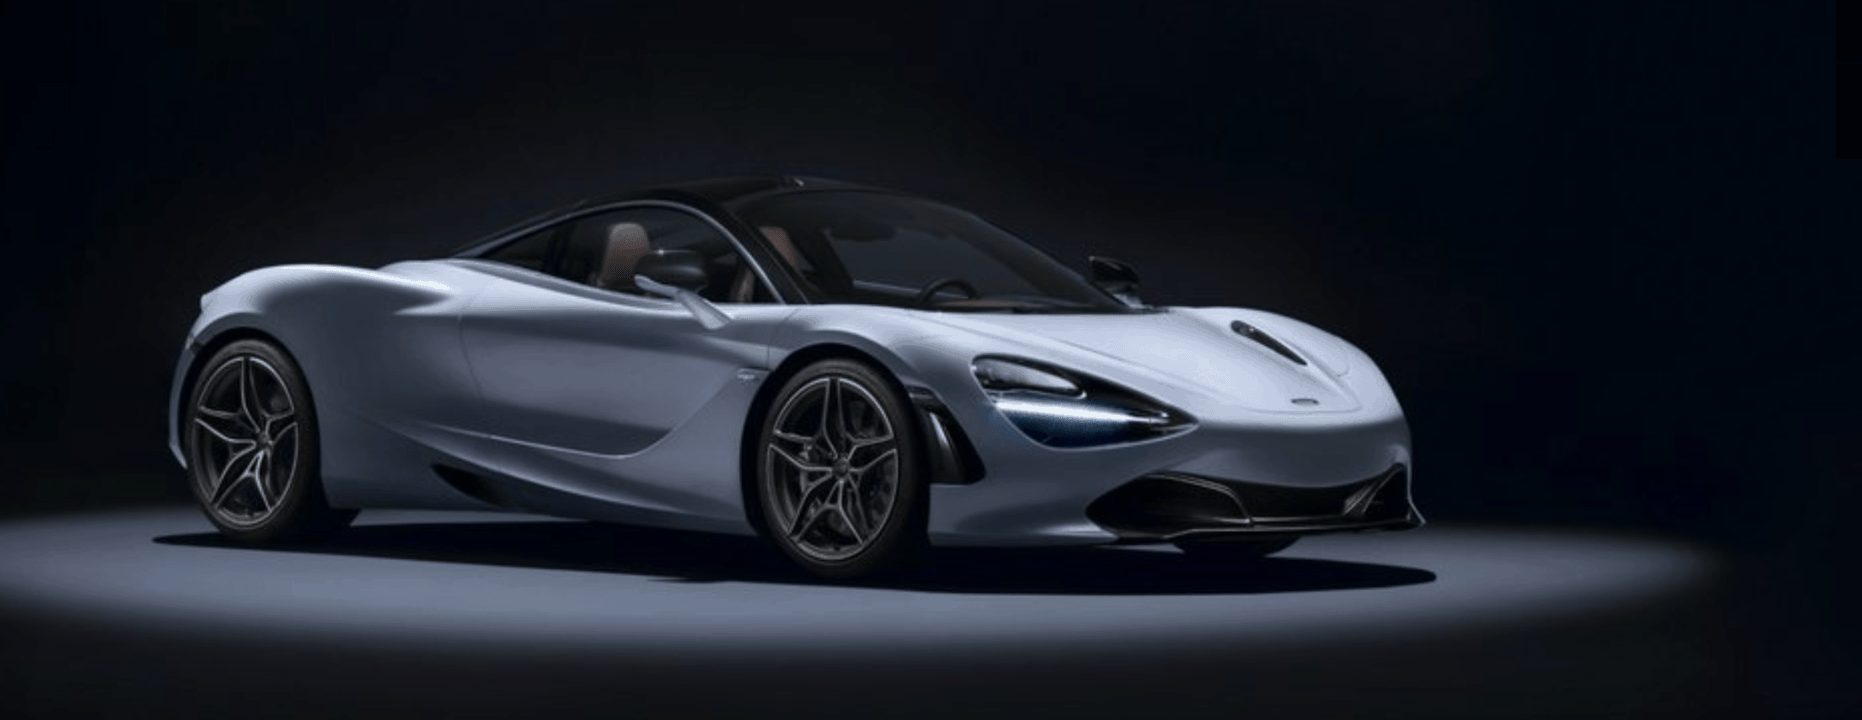 The McLaren 720S Supercar